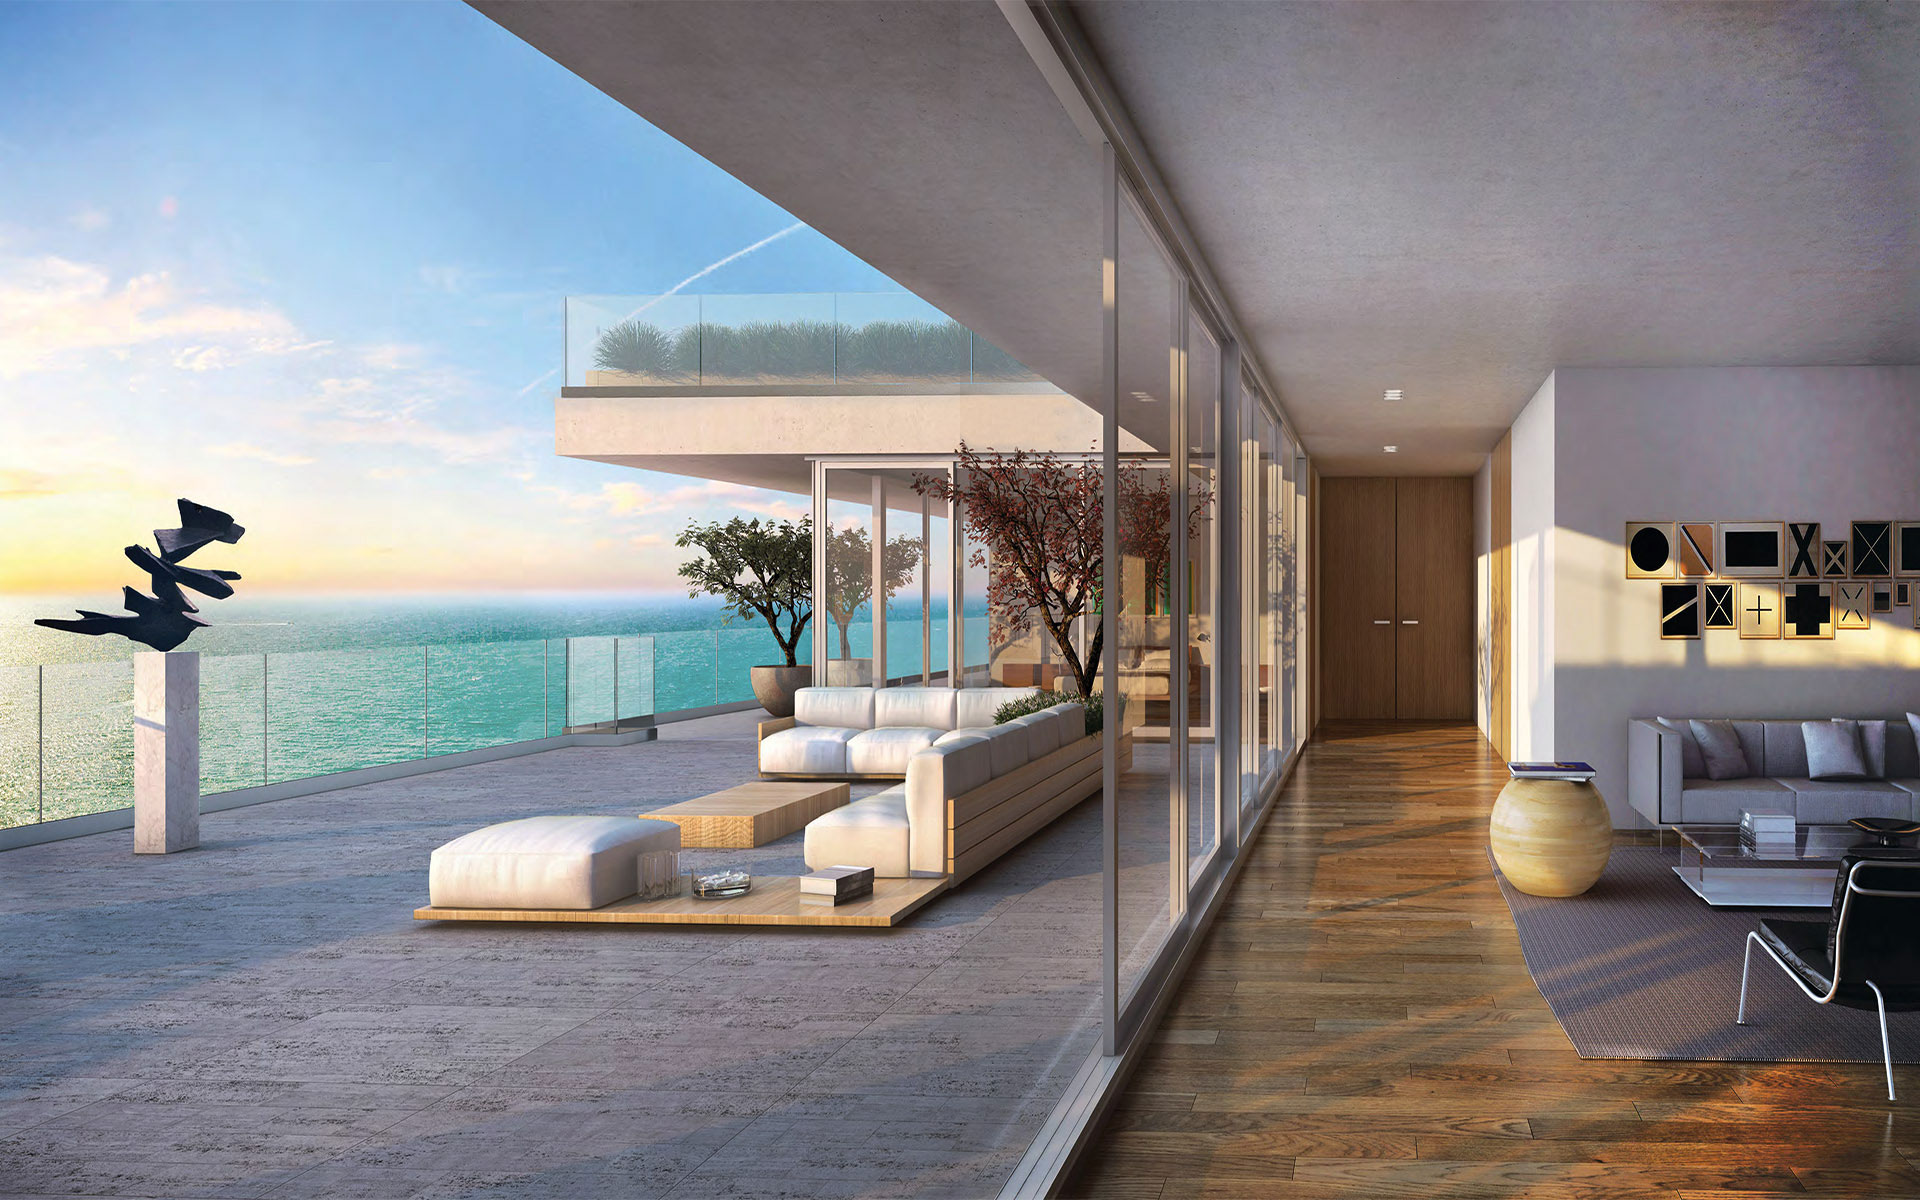 7 luxury condos in florida with expansive balconies for In the balcony